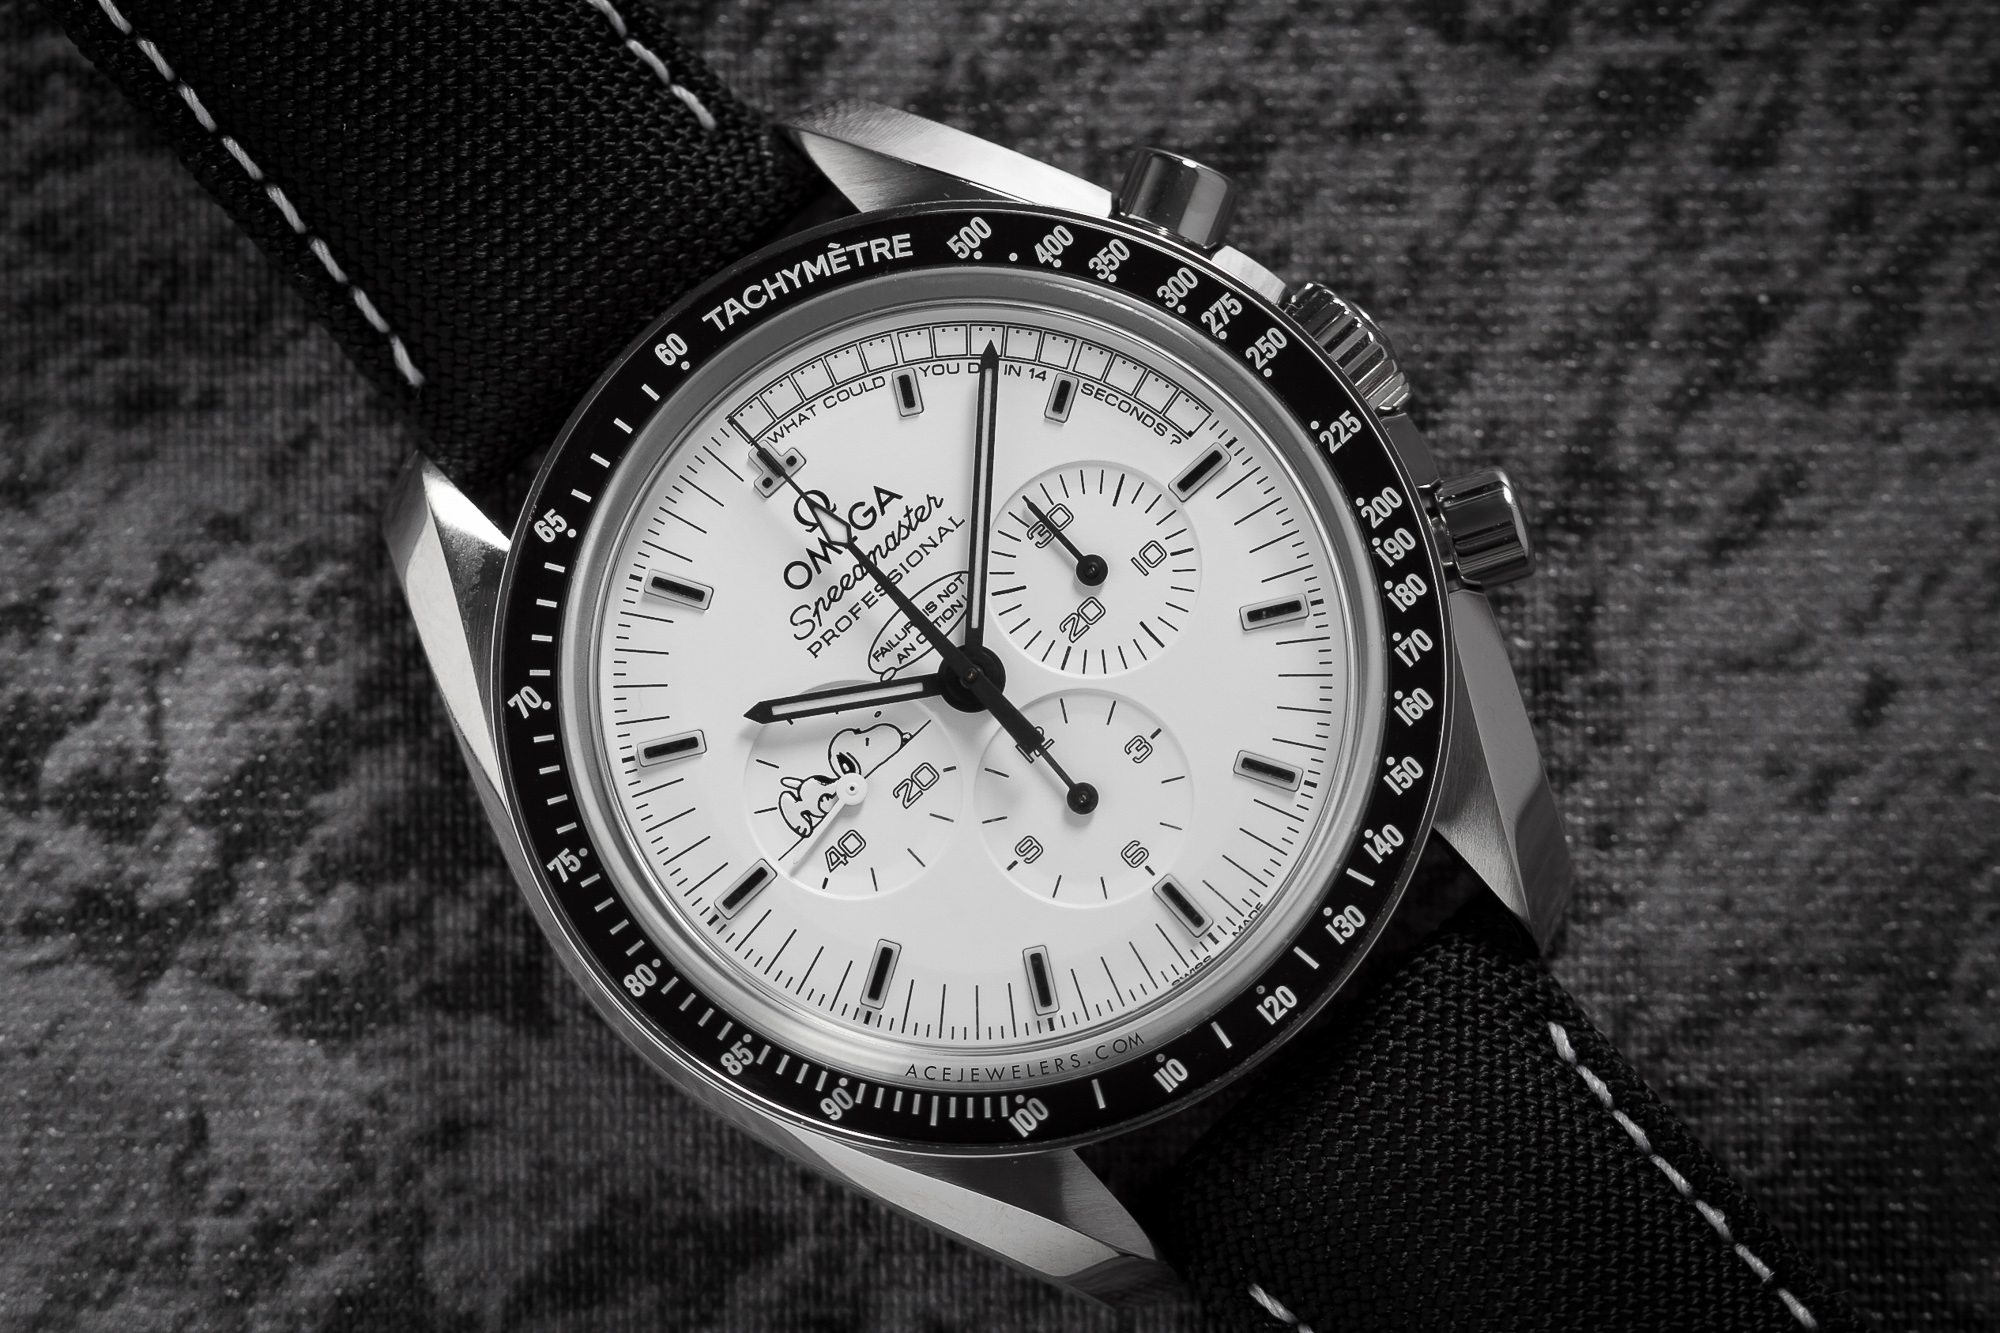 Omega Speedmaster Professional Silver Snoopy Award 311.32.42.30.04.003